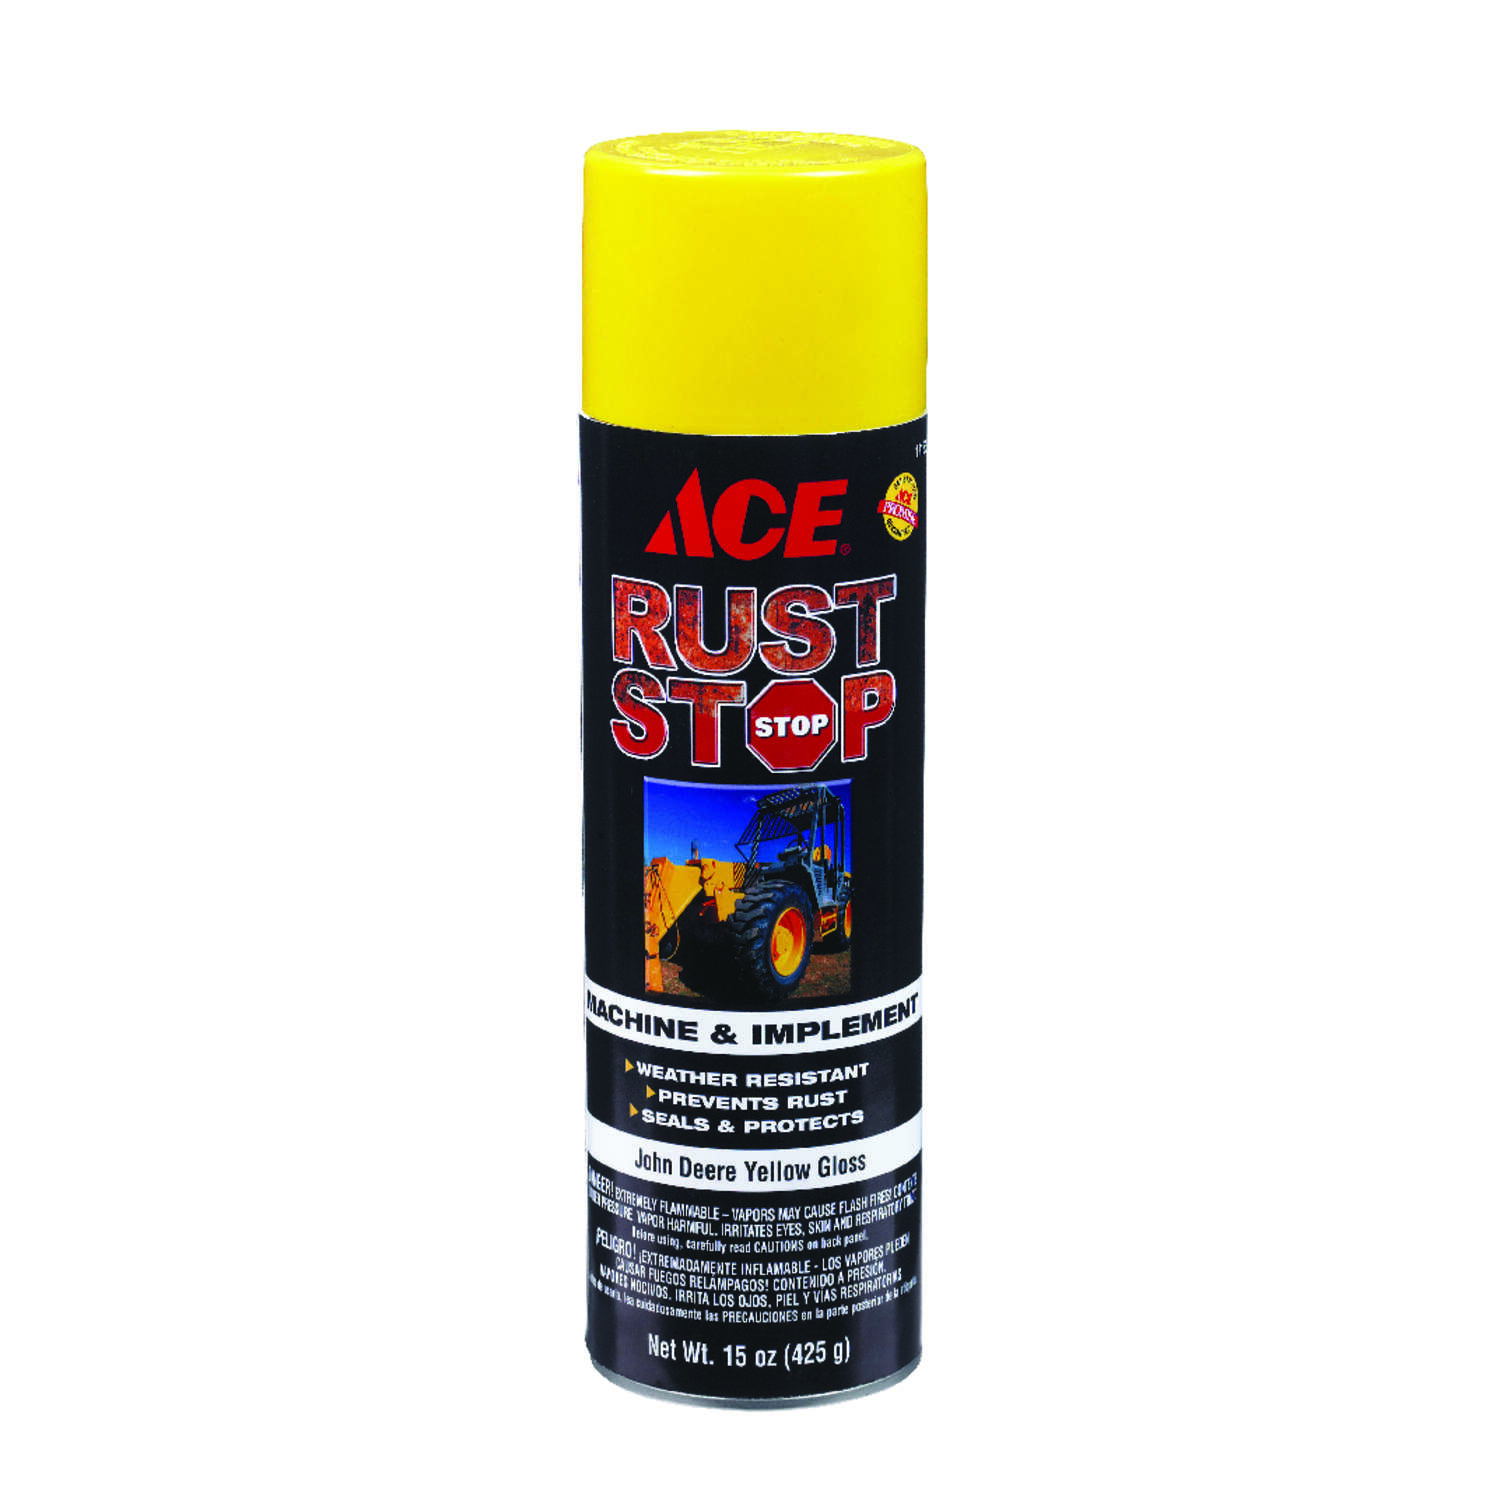 Ace  Rust Stop  Gloss  Machine And Implement Enamel Spray Paint  15 oz. John Deere Yellow